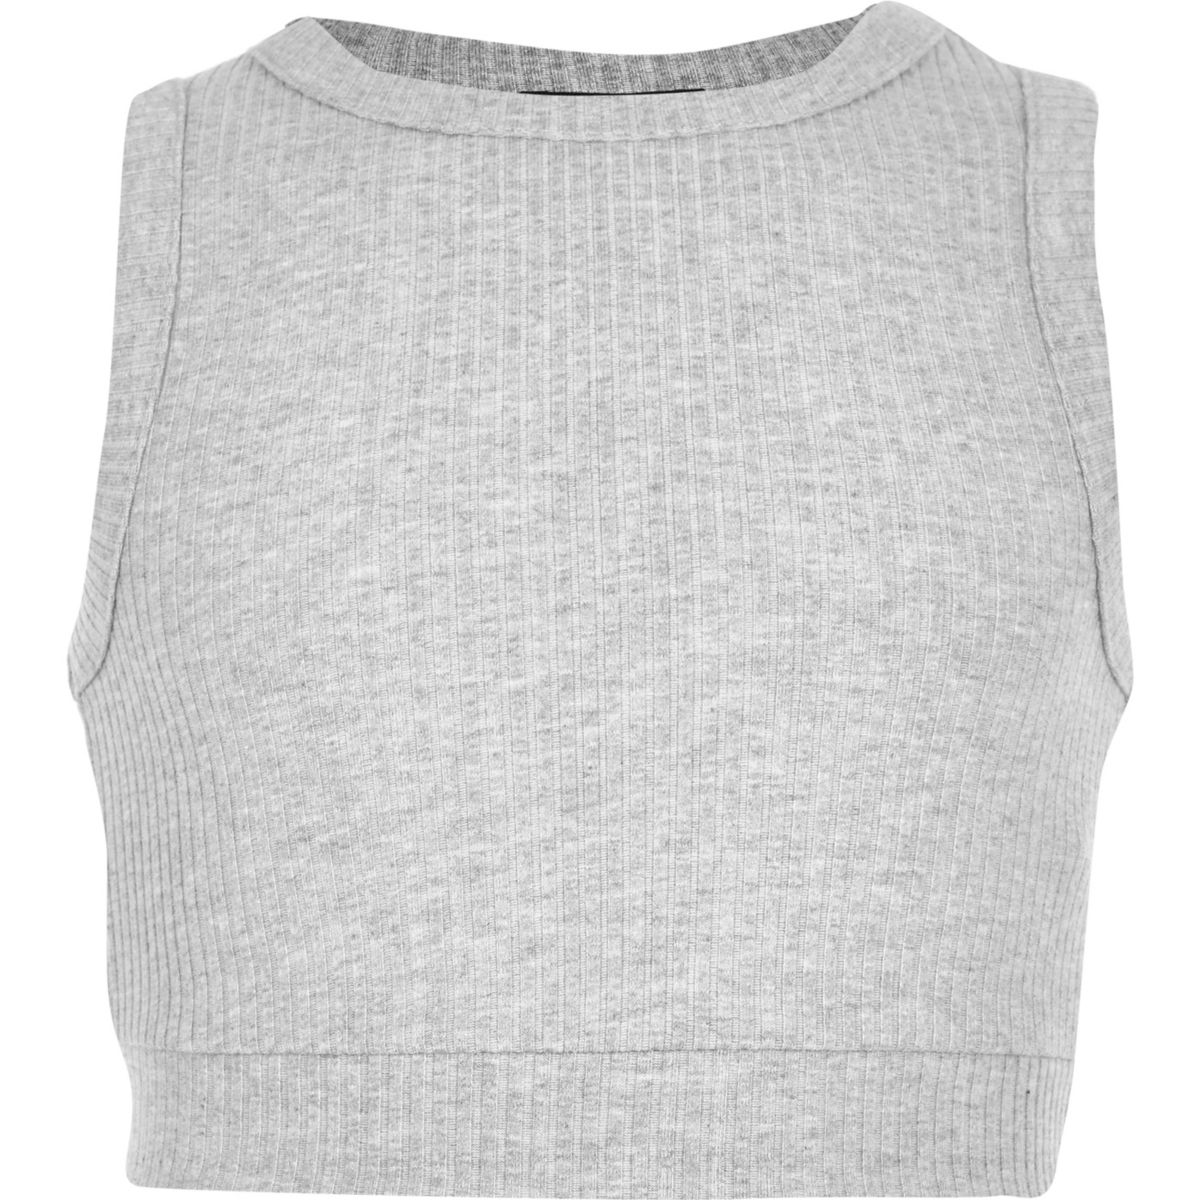 Girls Grey Marl Ribbed Crop Top by River Island